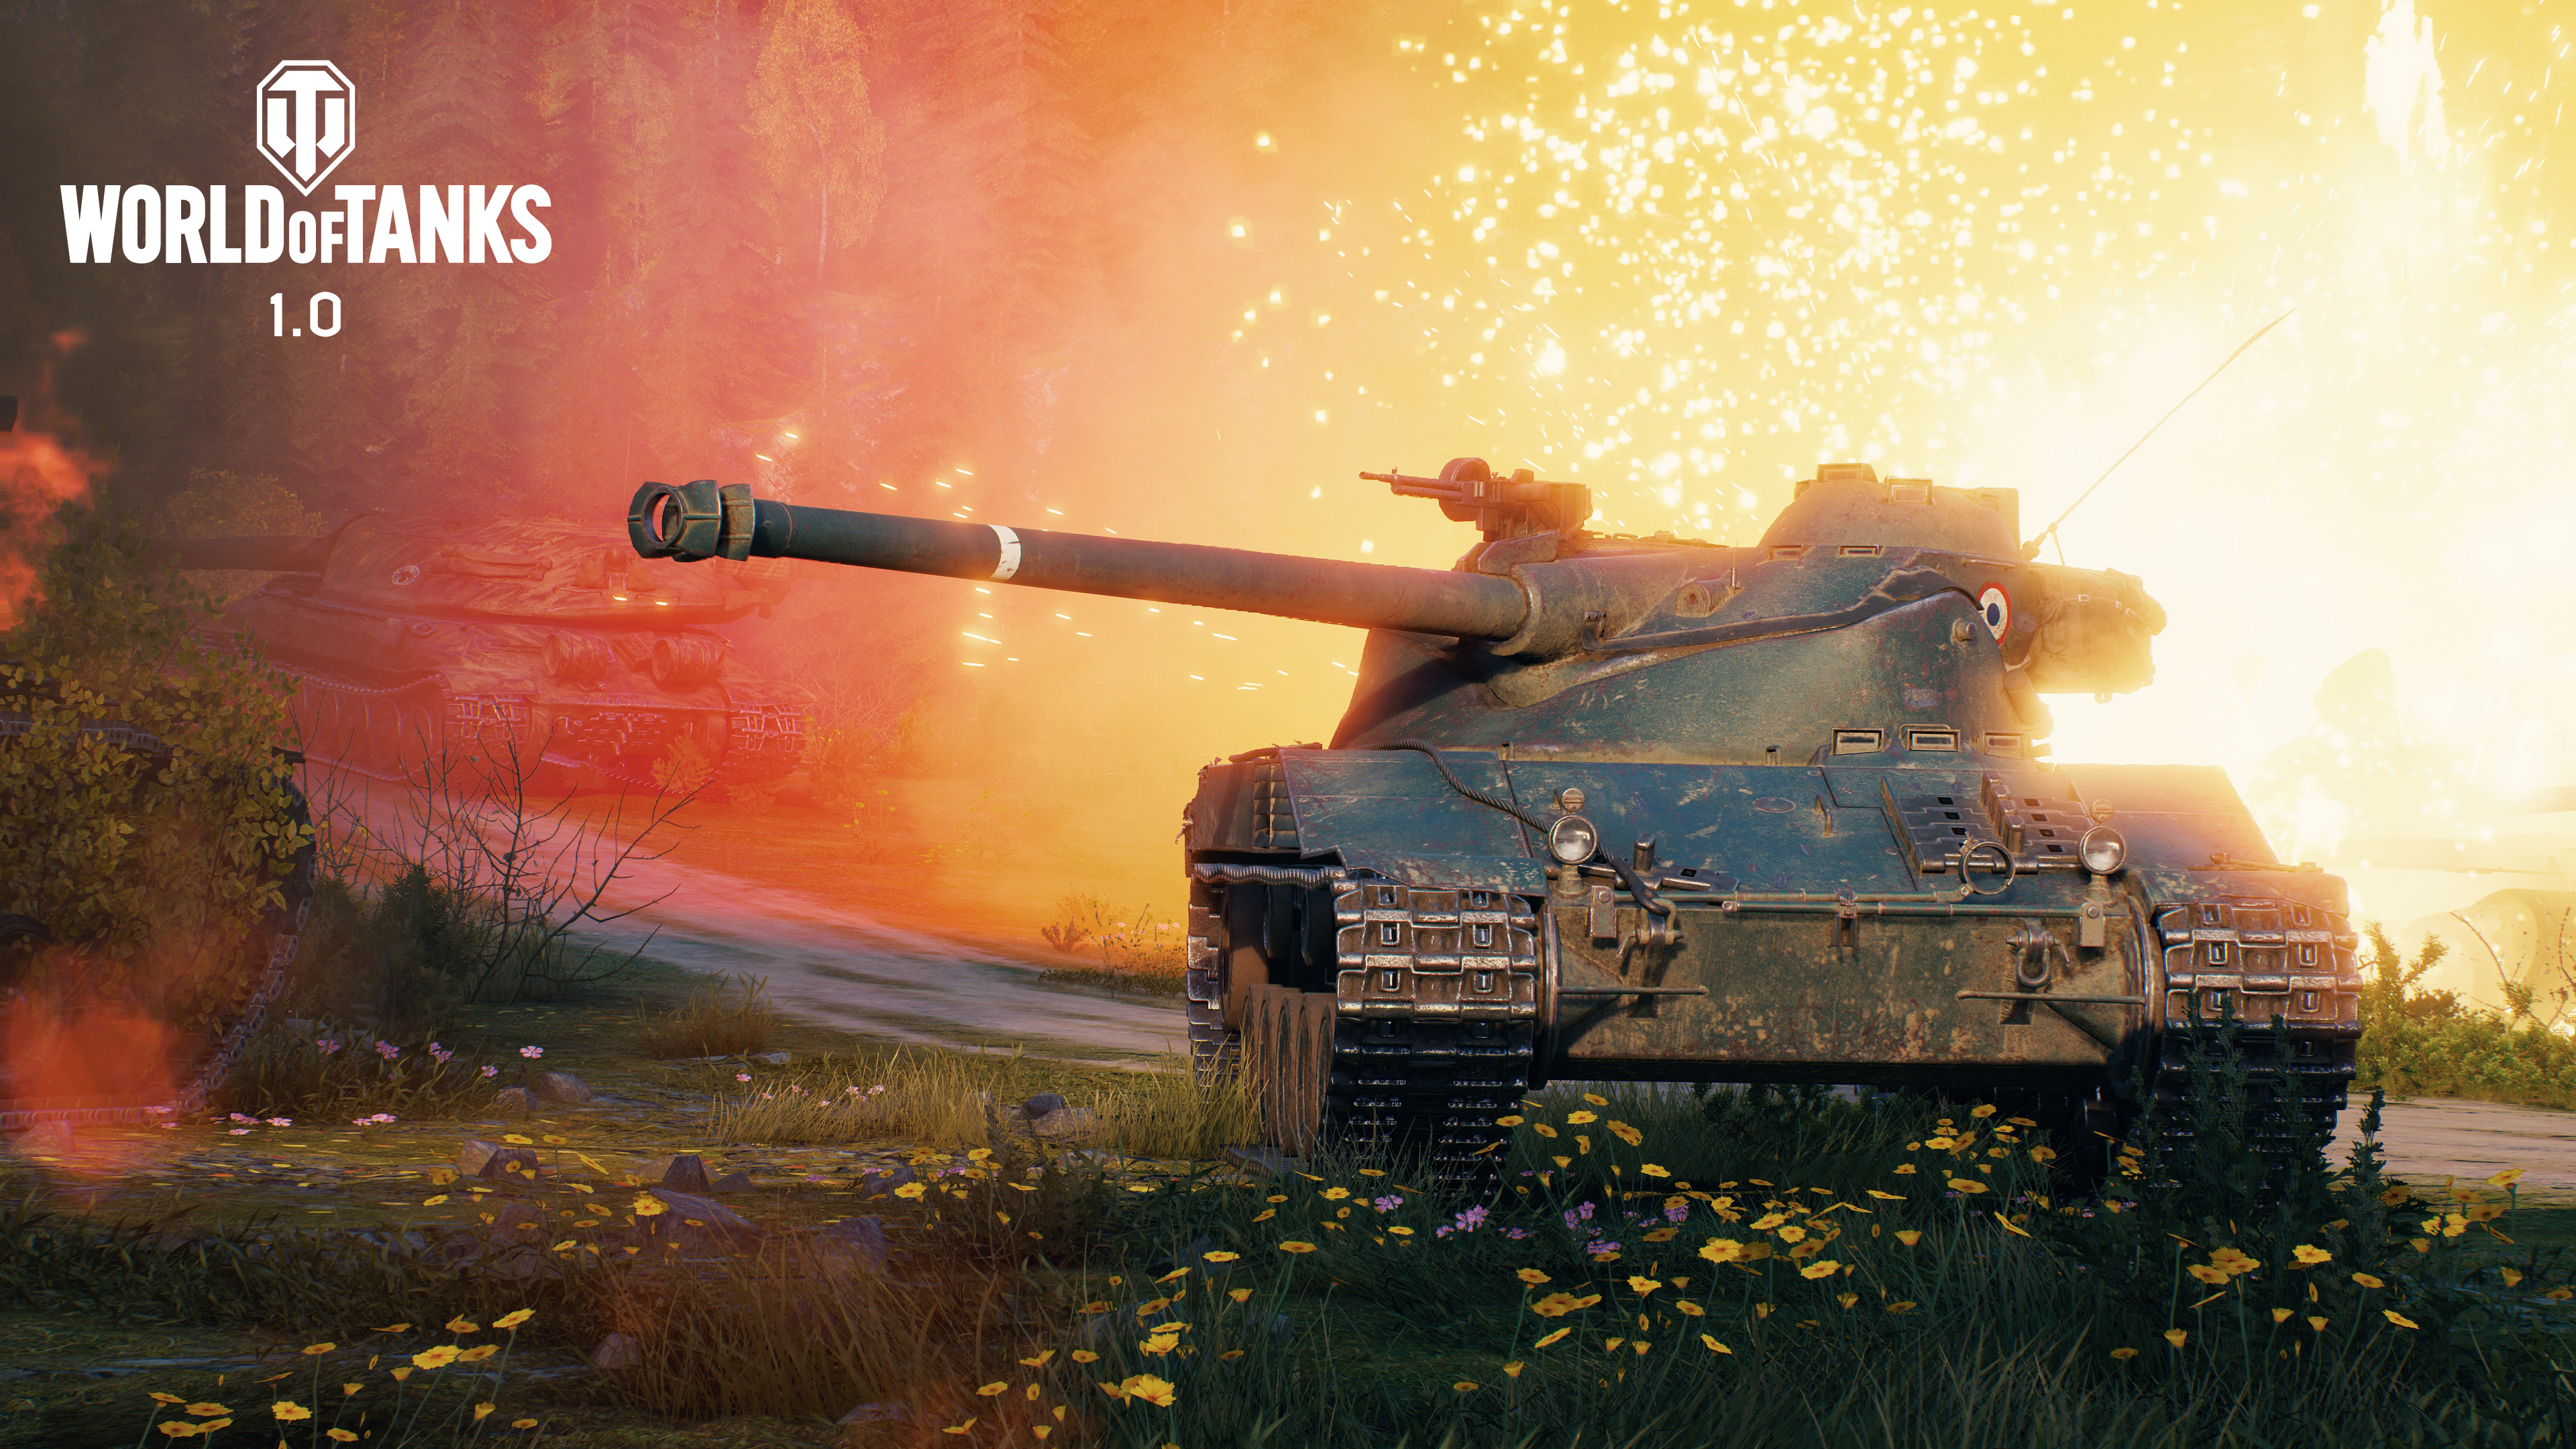 A tank rolls away from an explosion in World of Tanks